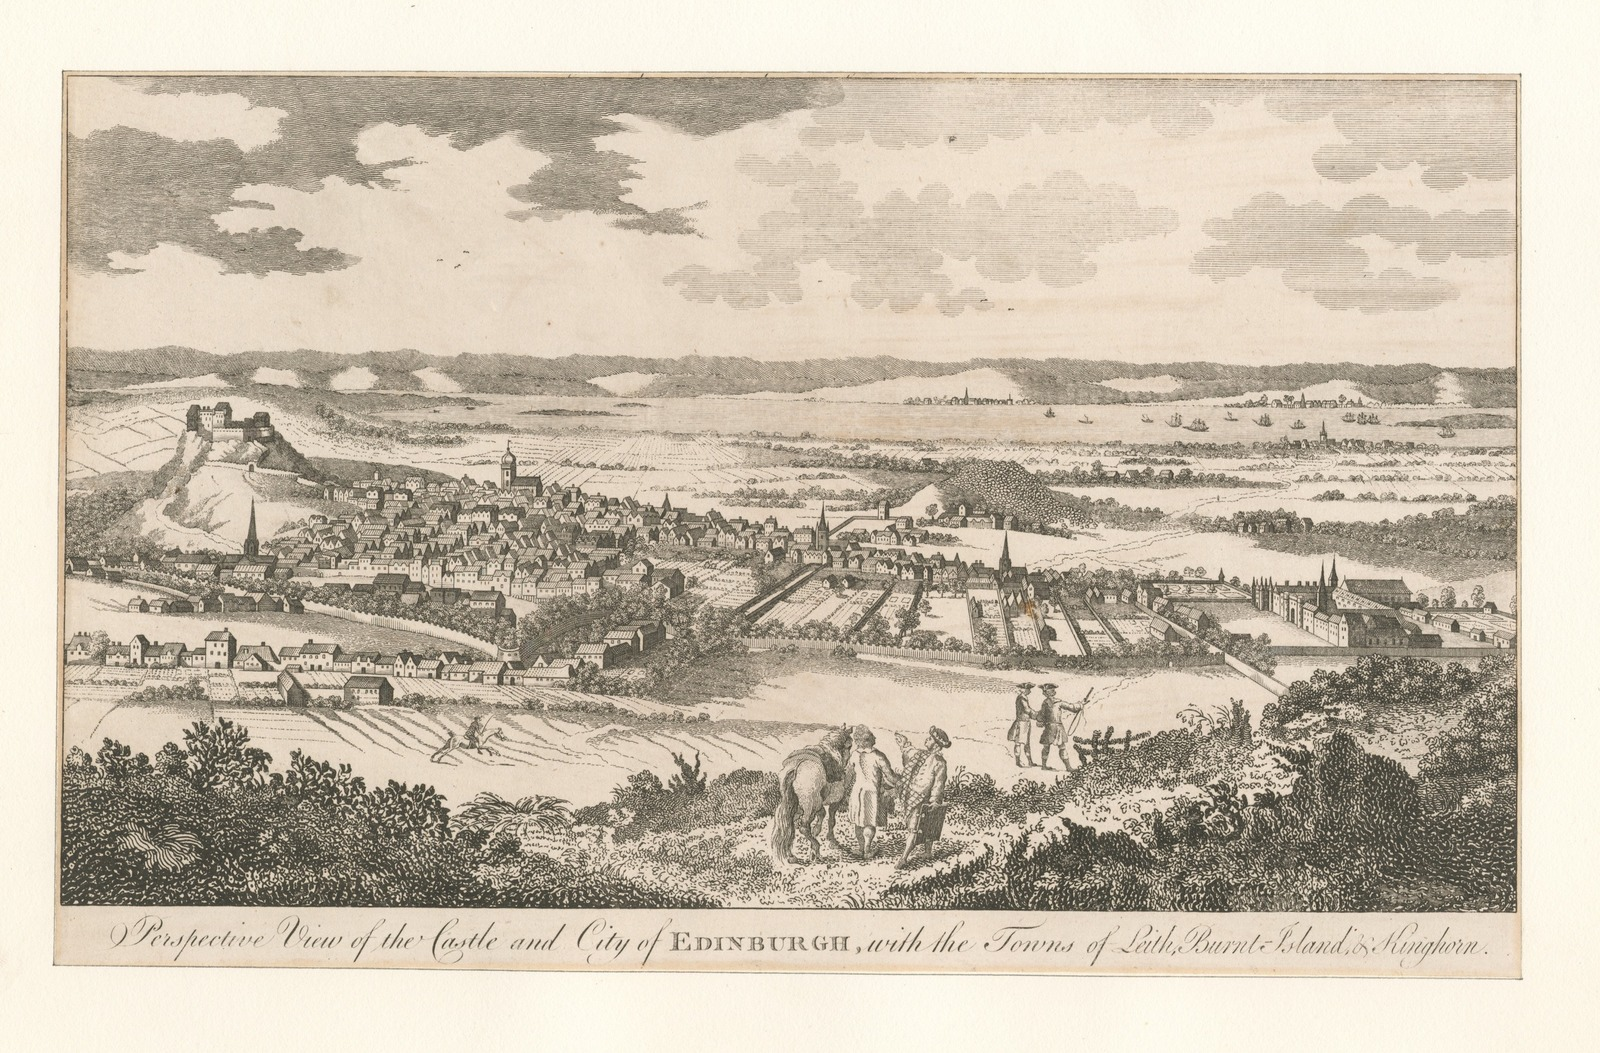 Perspective view of the castle and city of Edinburgh, with the towns of Leith, Burnt-Island, and Kinghorn.